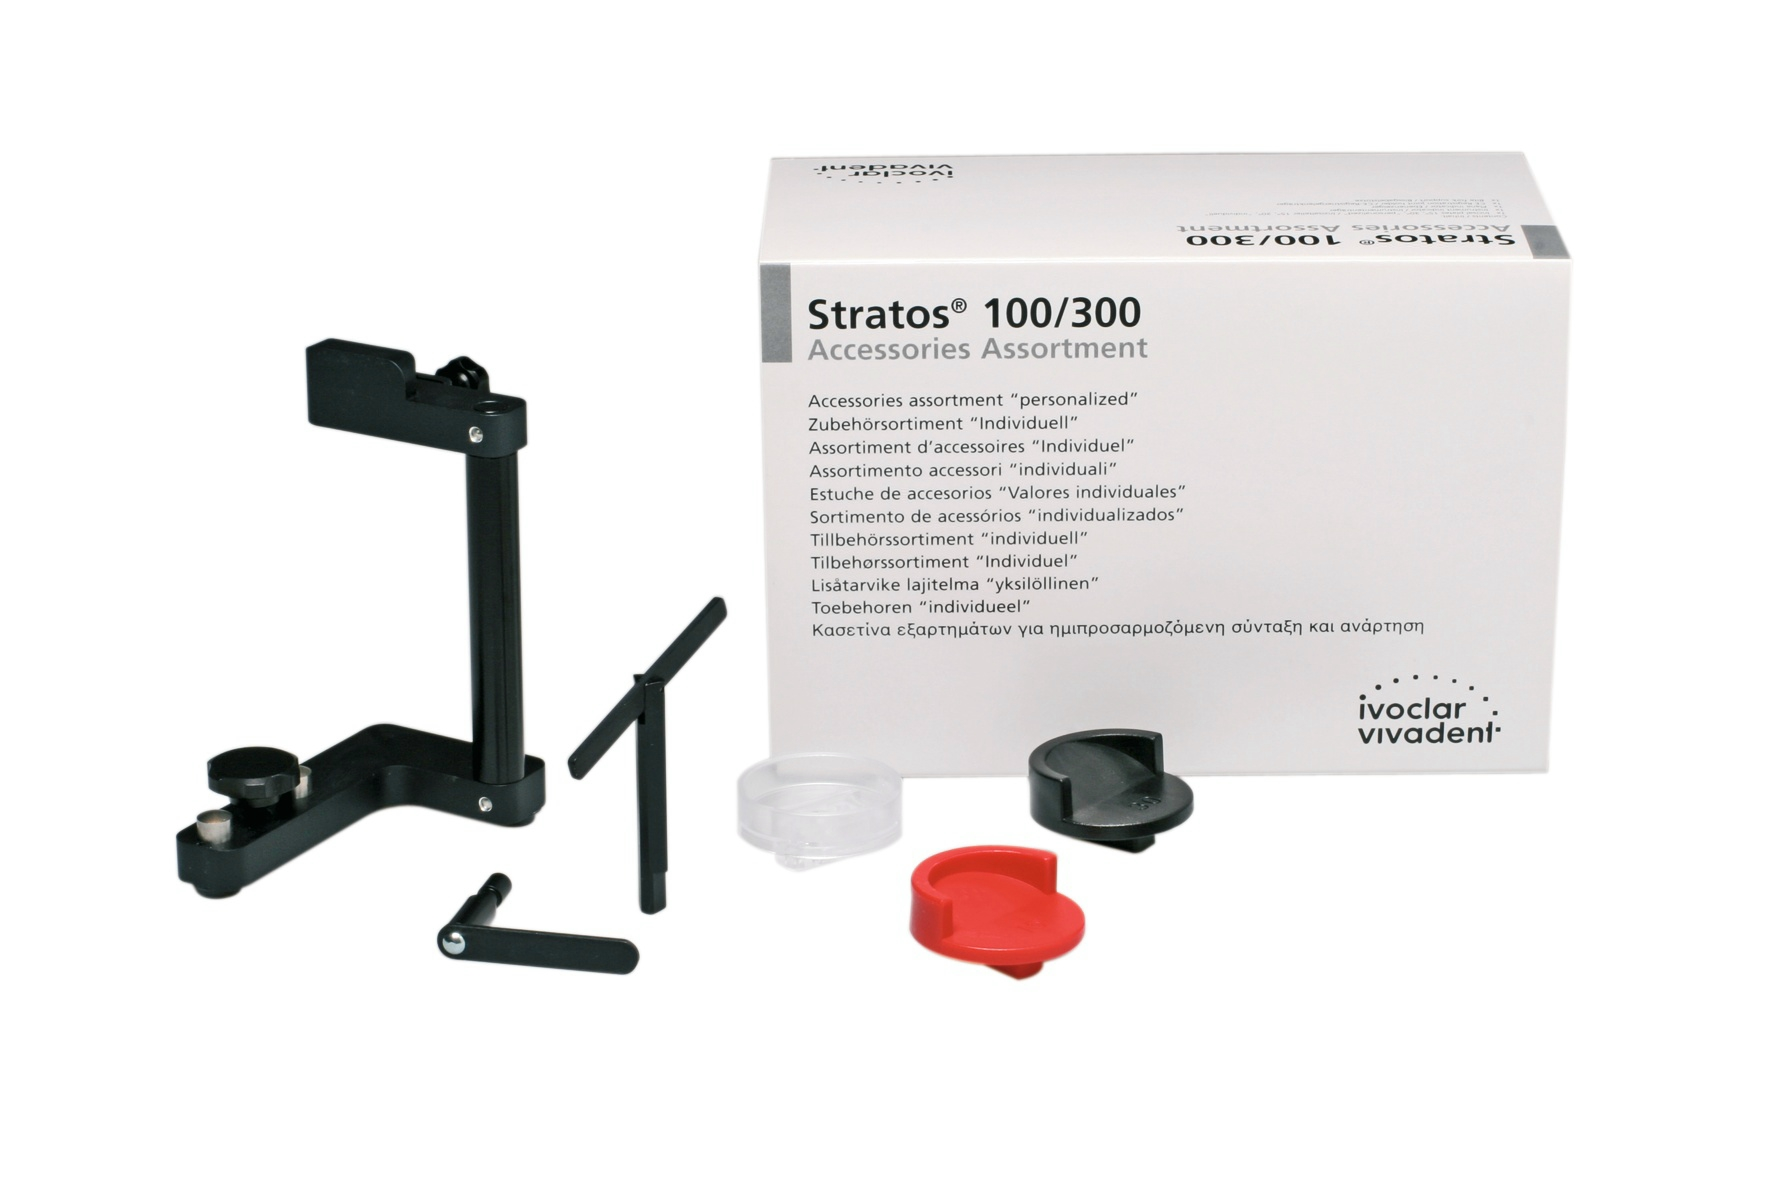 Accessories Assortment for Stratos 100/300